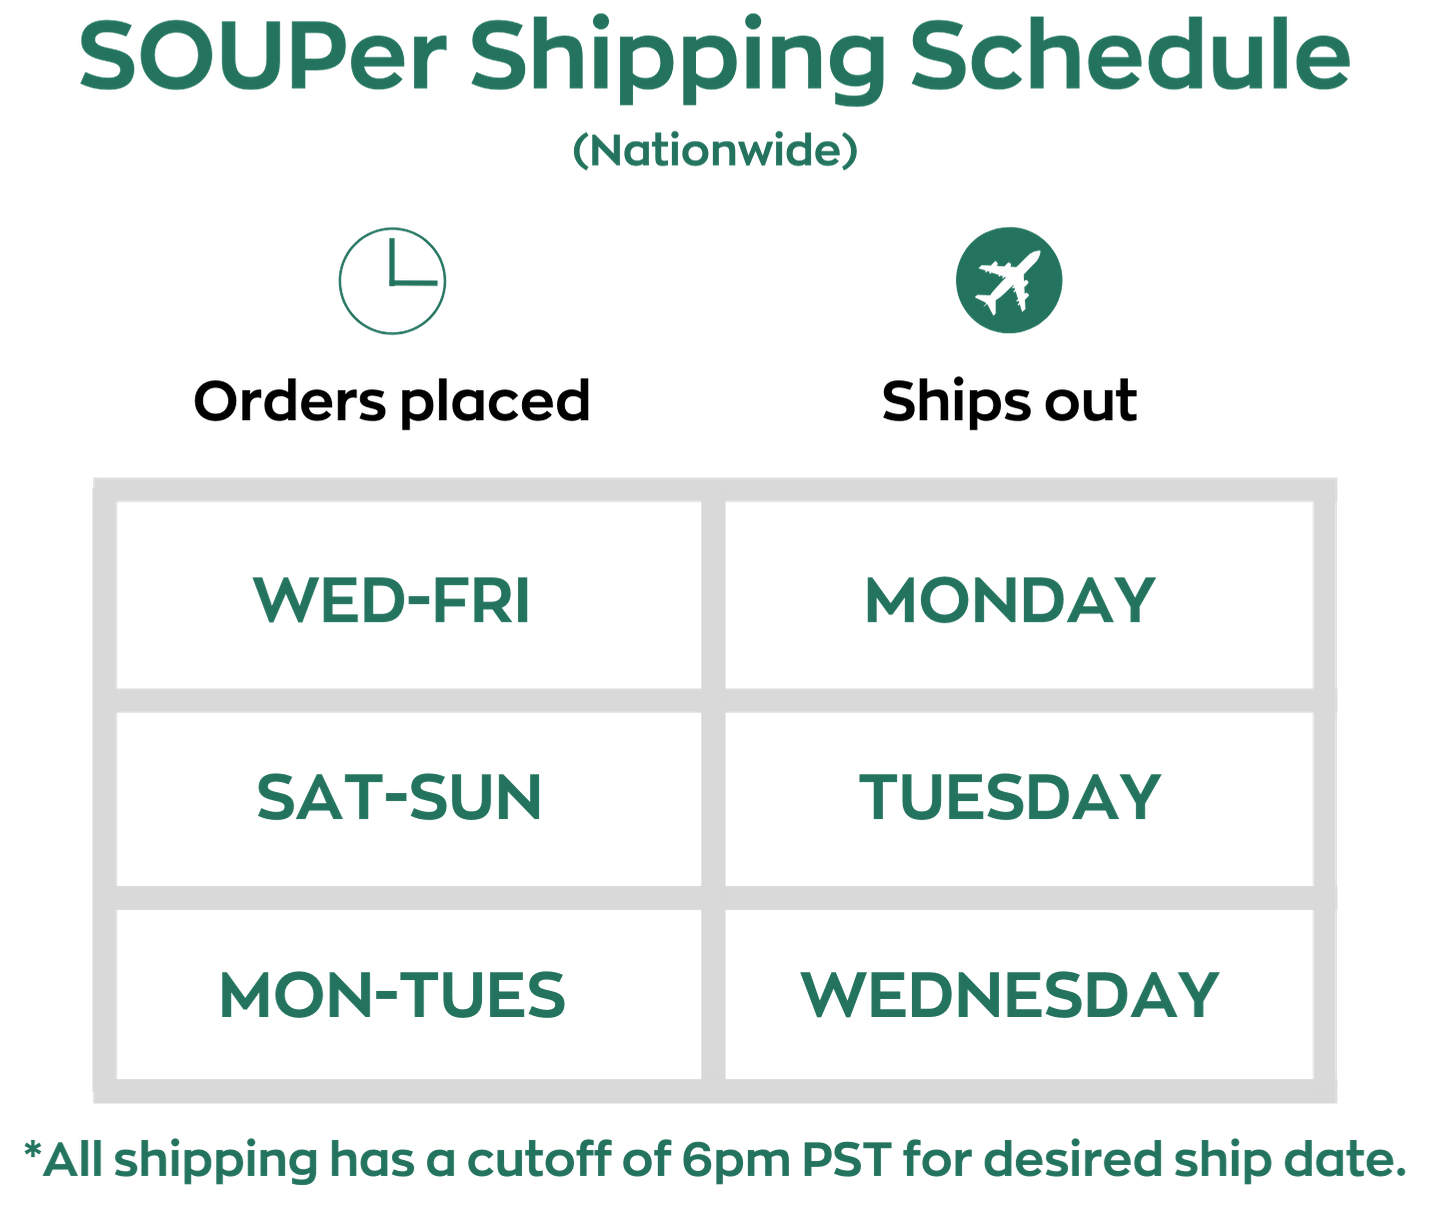 souper-shipping-schedule-final-.png